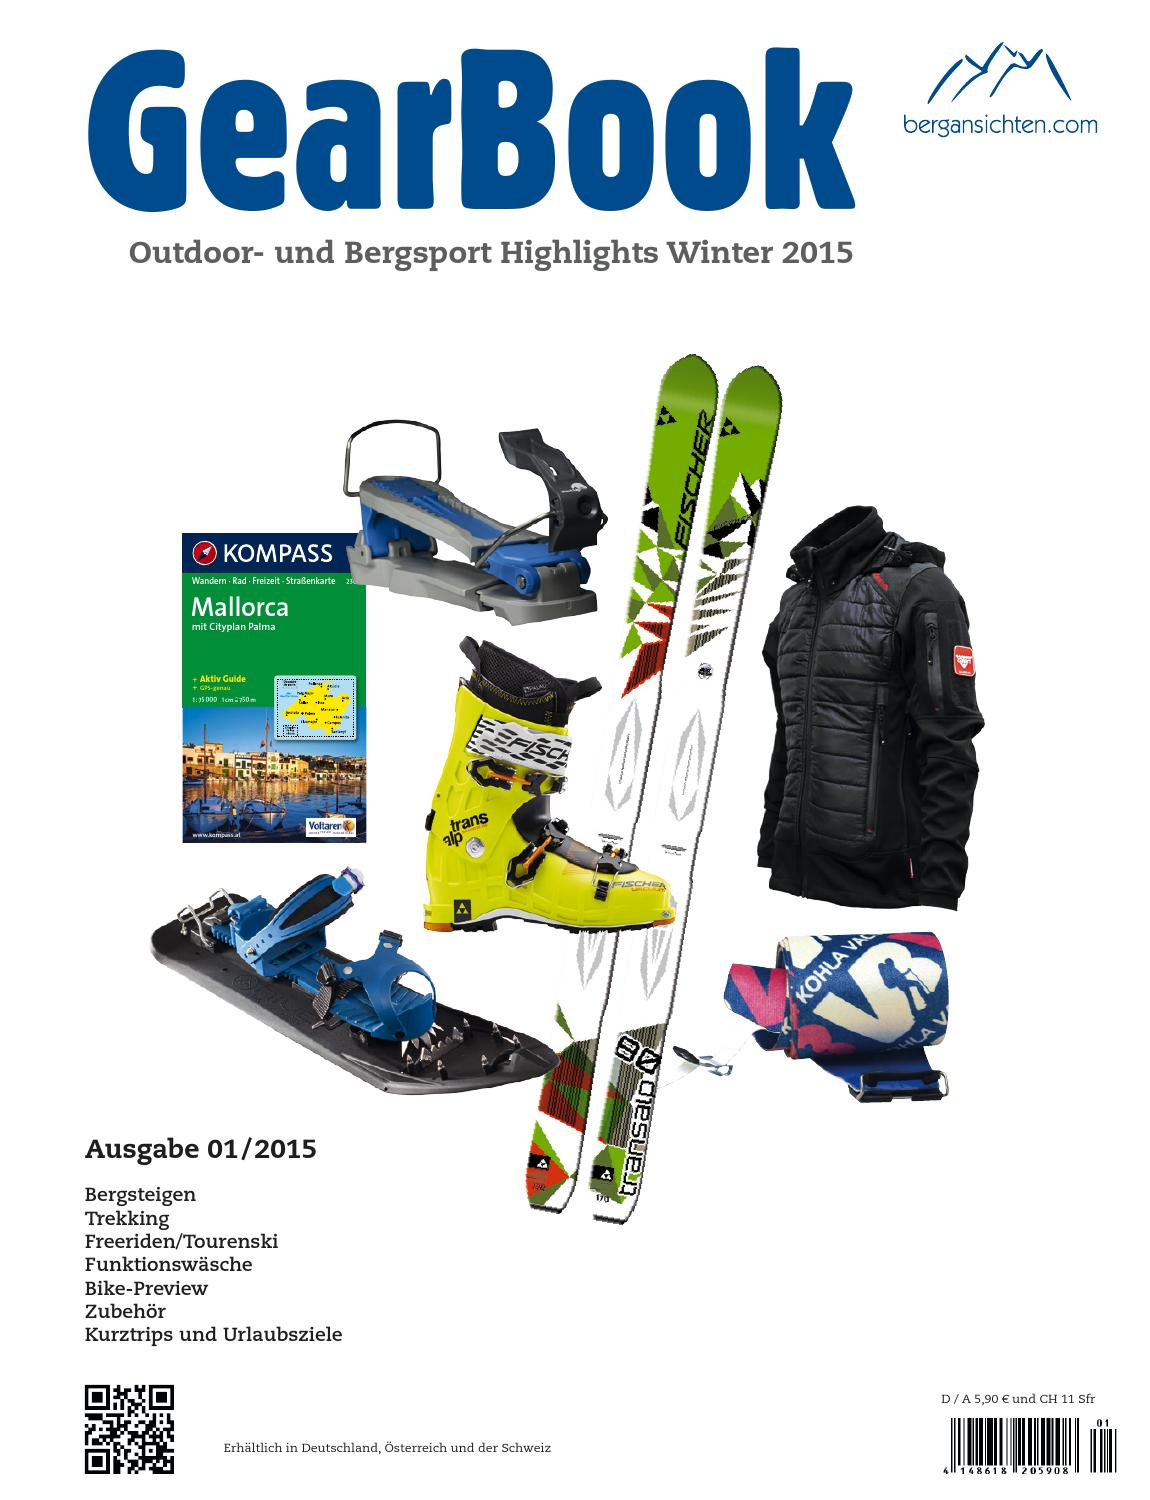 GearBook Winter 2014 by bergansichten - issuu